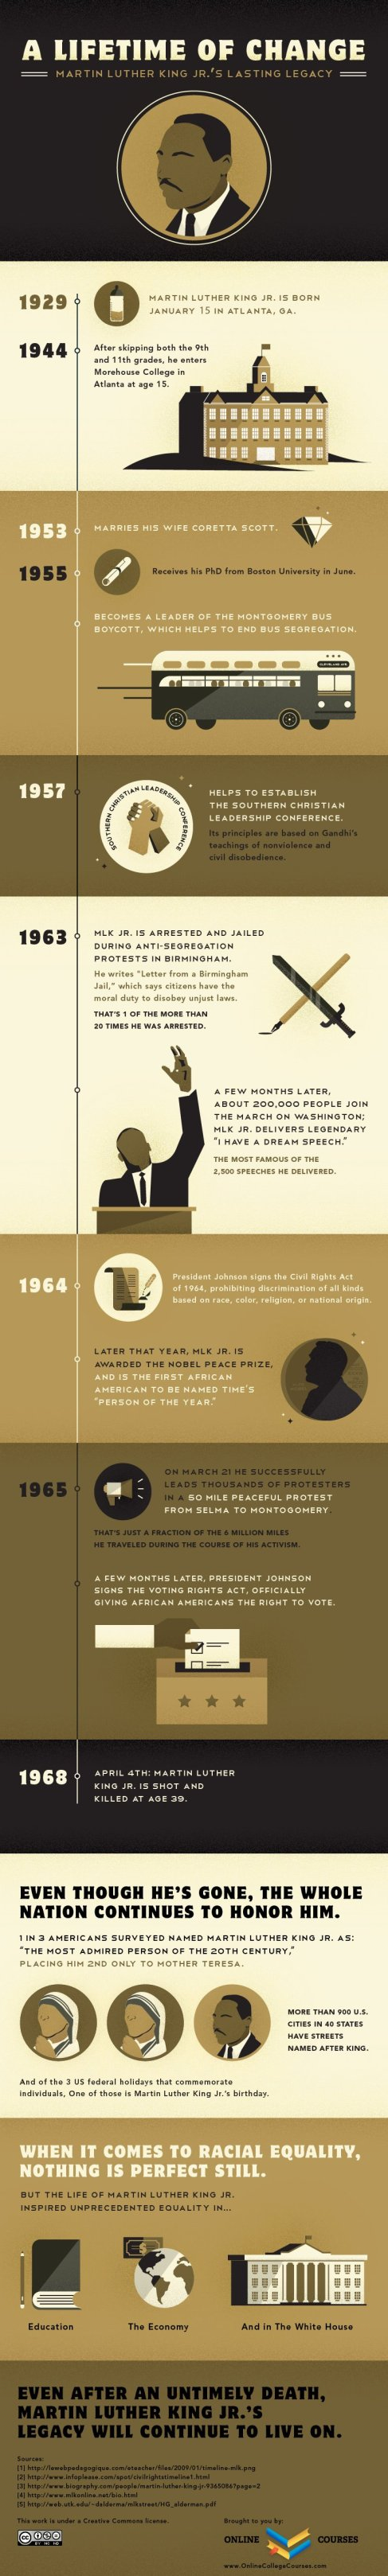 martin luther king infographic, full description in linked article